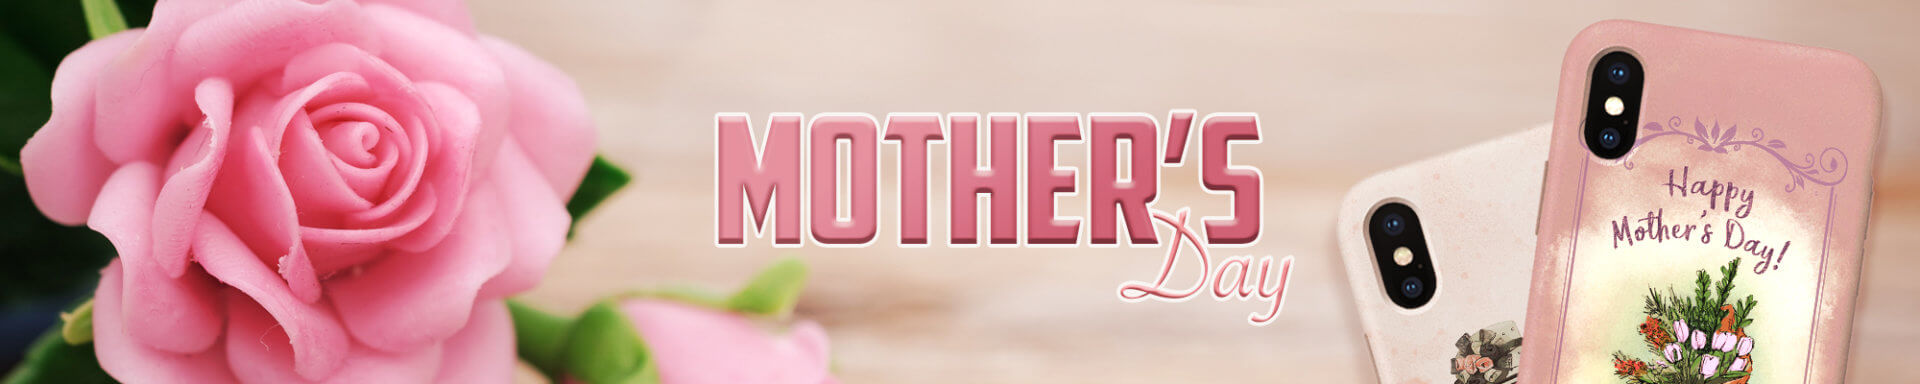 Mother's Day Phone Cases